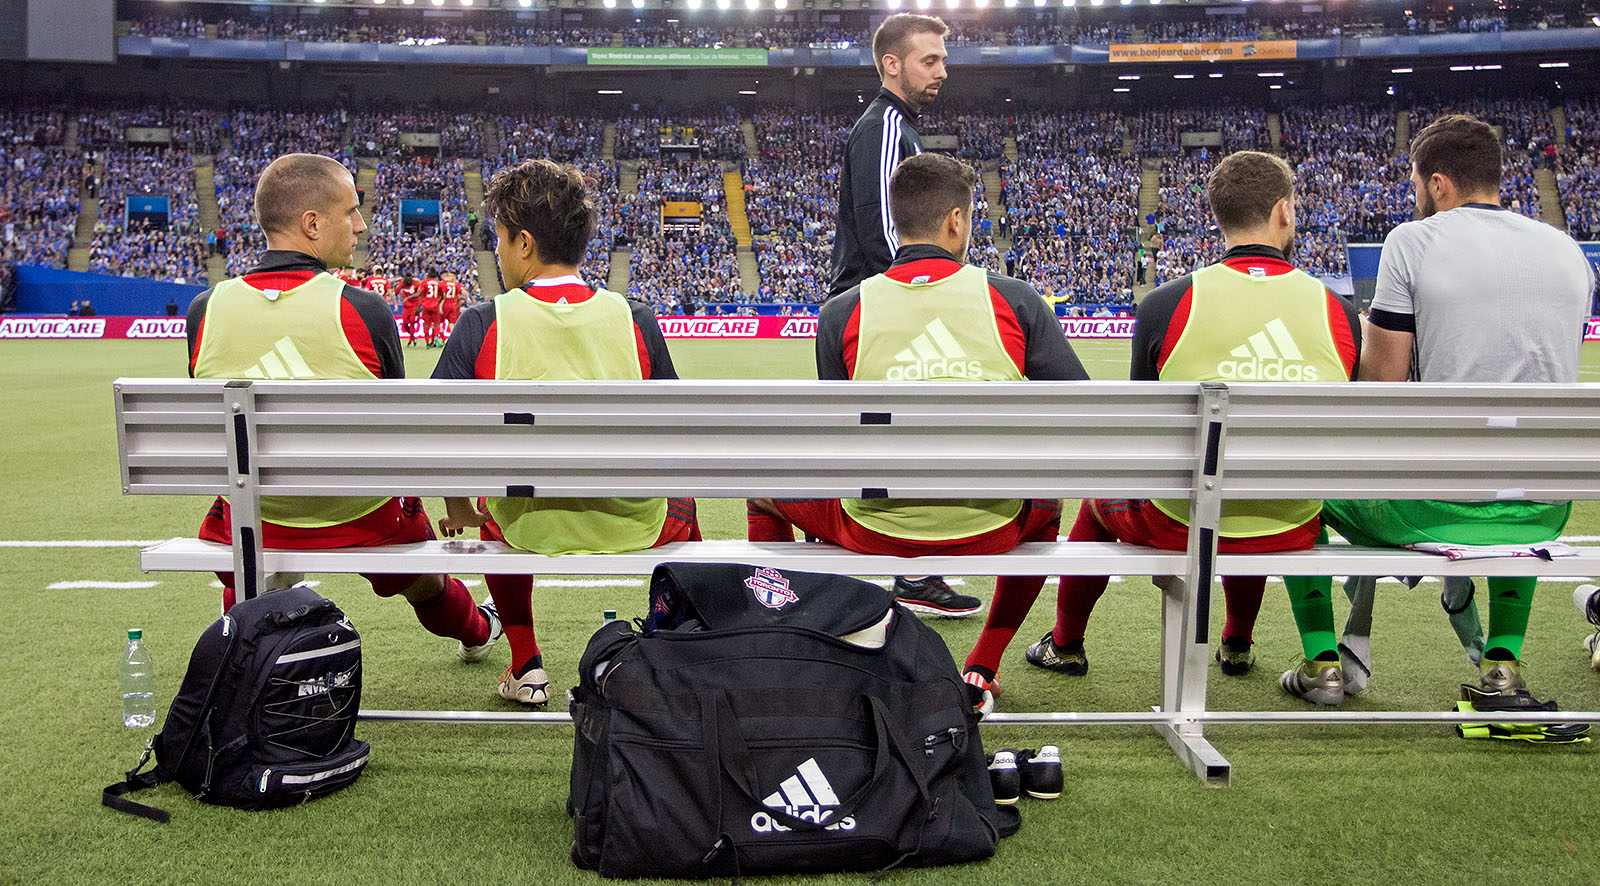 Toronto FC substitution bench during a 2016 MLS Cup playoff game in Montreal on November, 22, 2016.